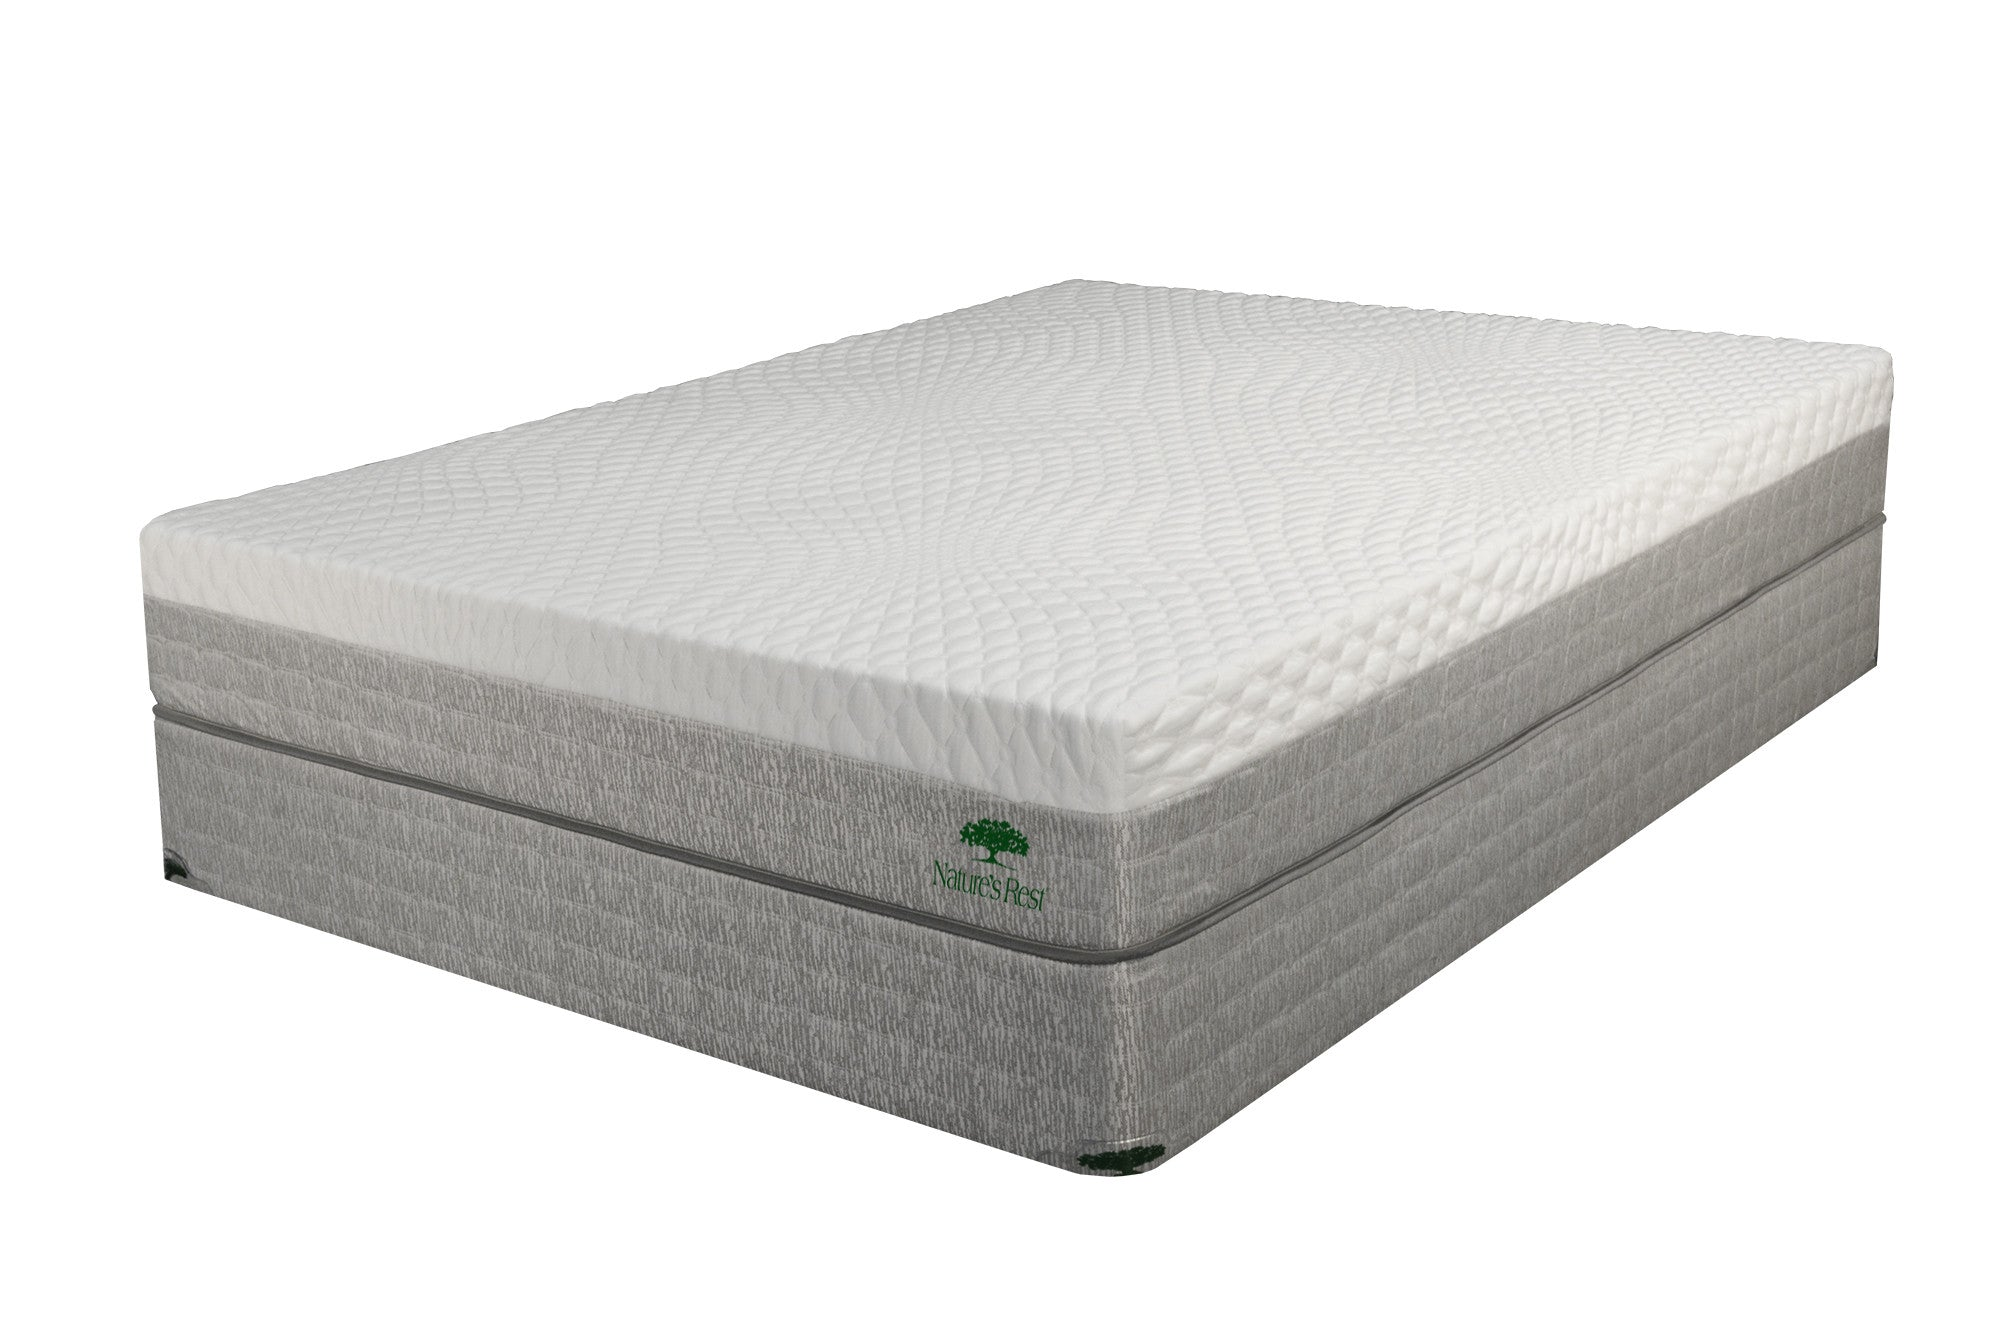 Hybrid Mattress Handmade with Talalay: Luxury Sleep | Nature's Rest